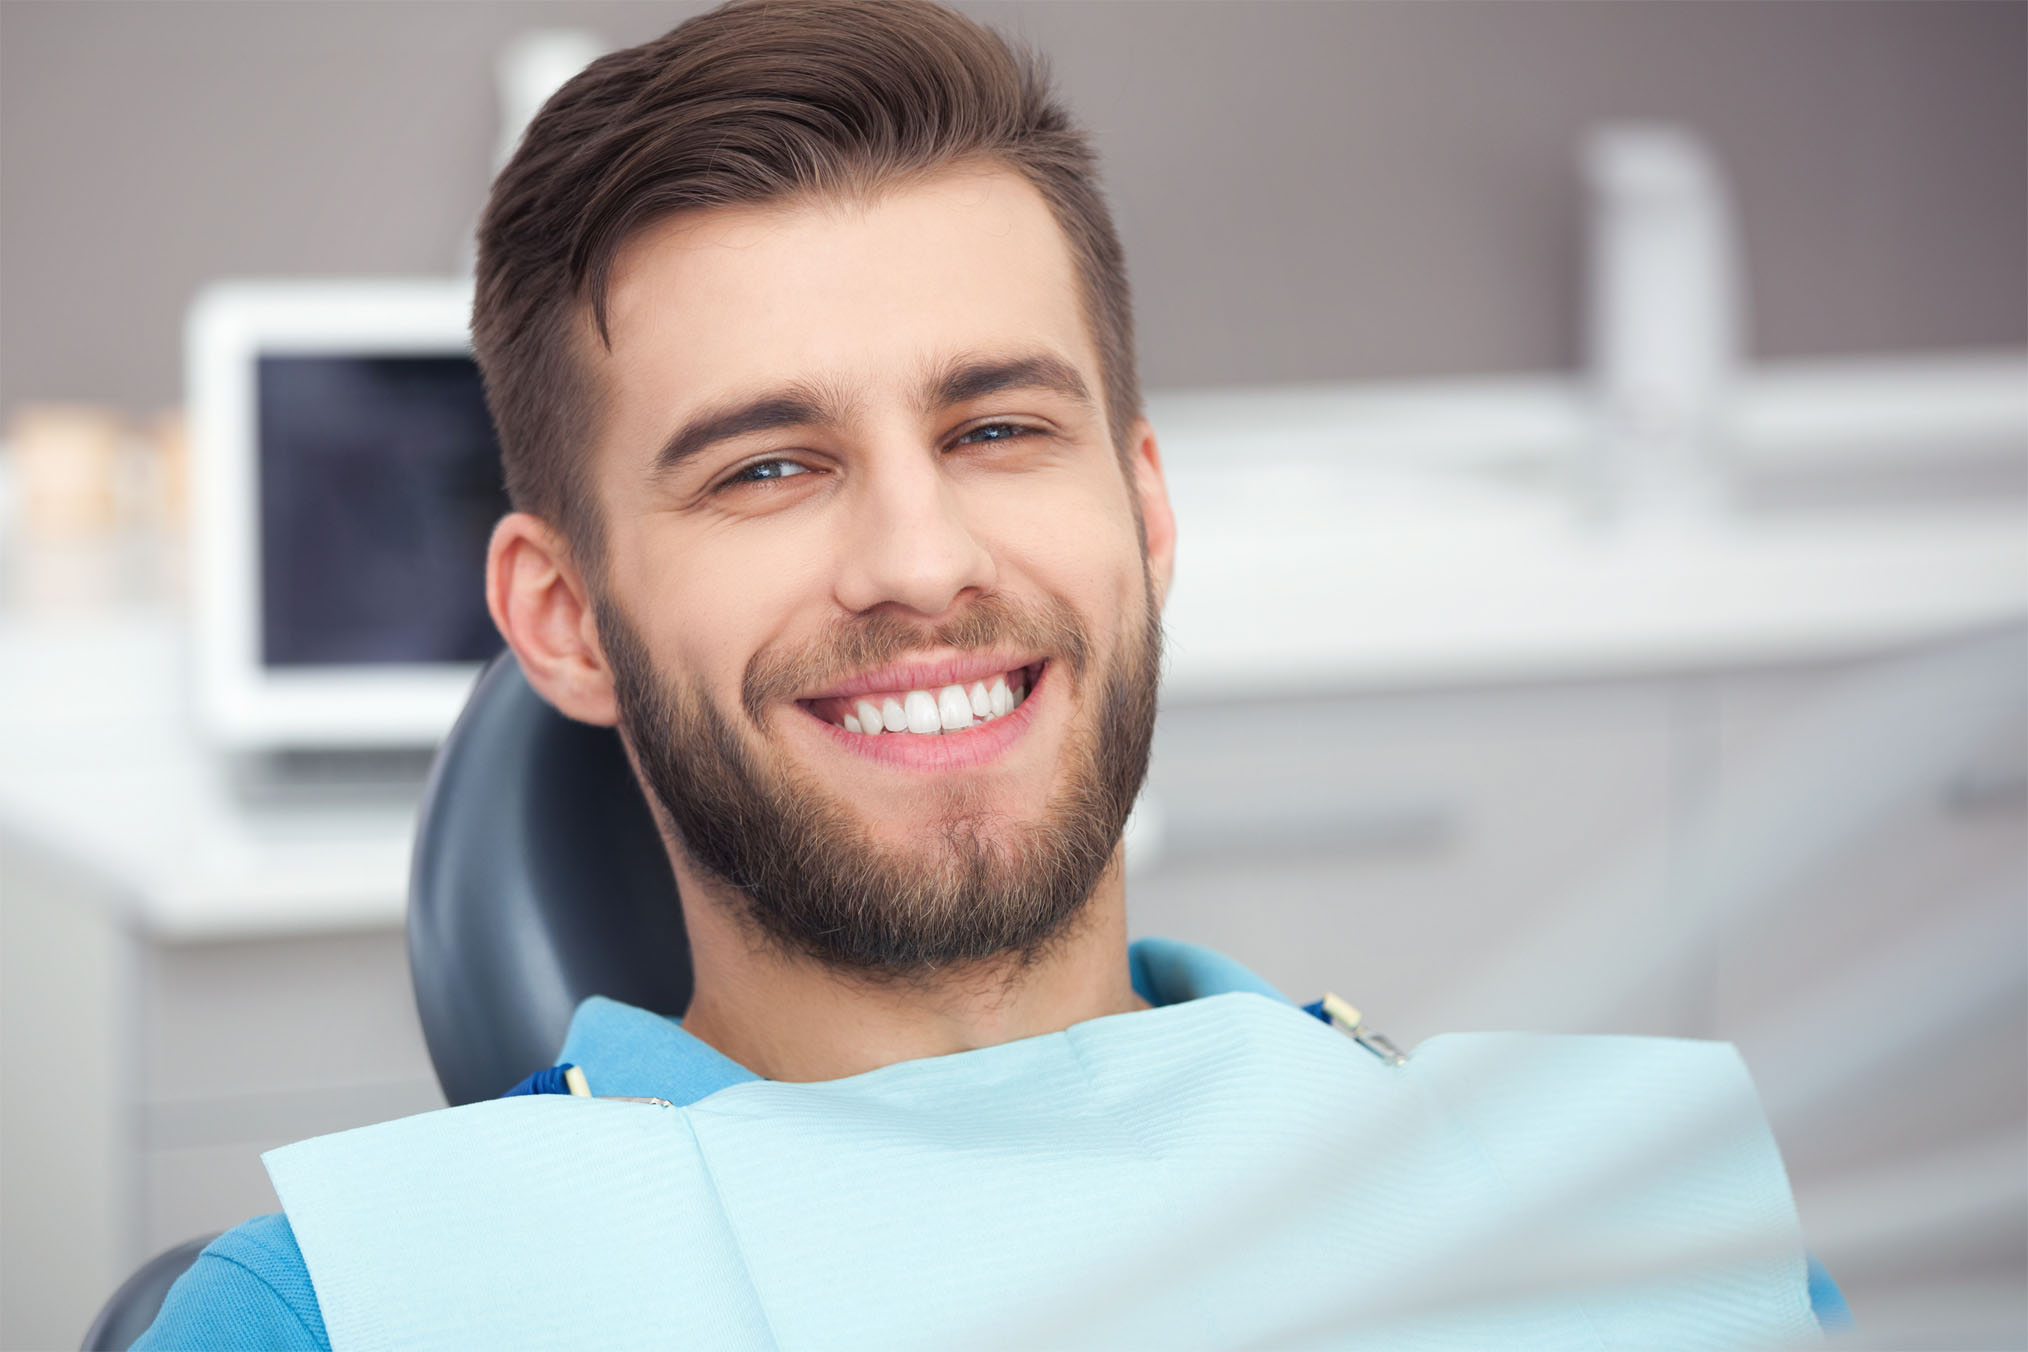 Young male patient smiling in the dental chair